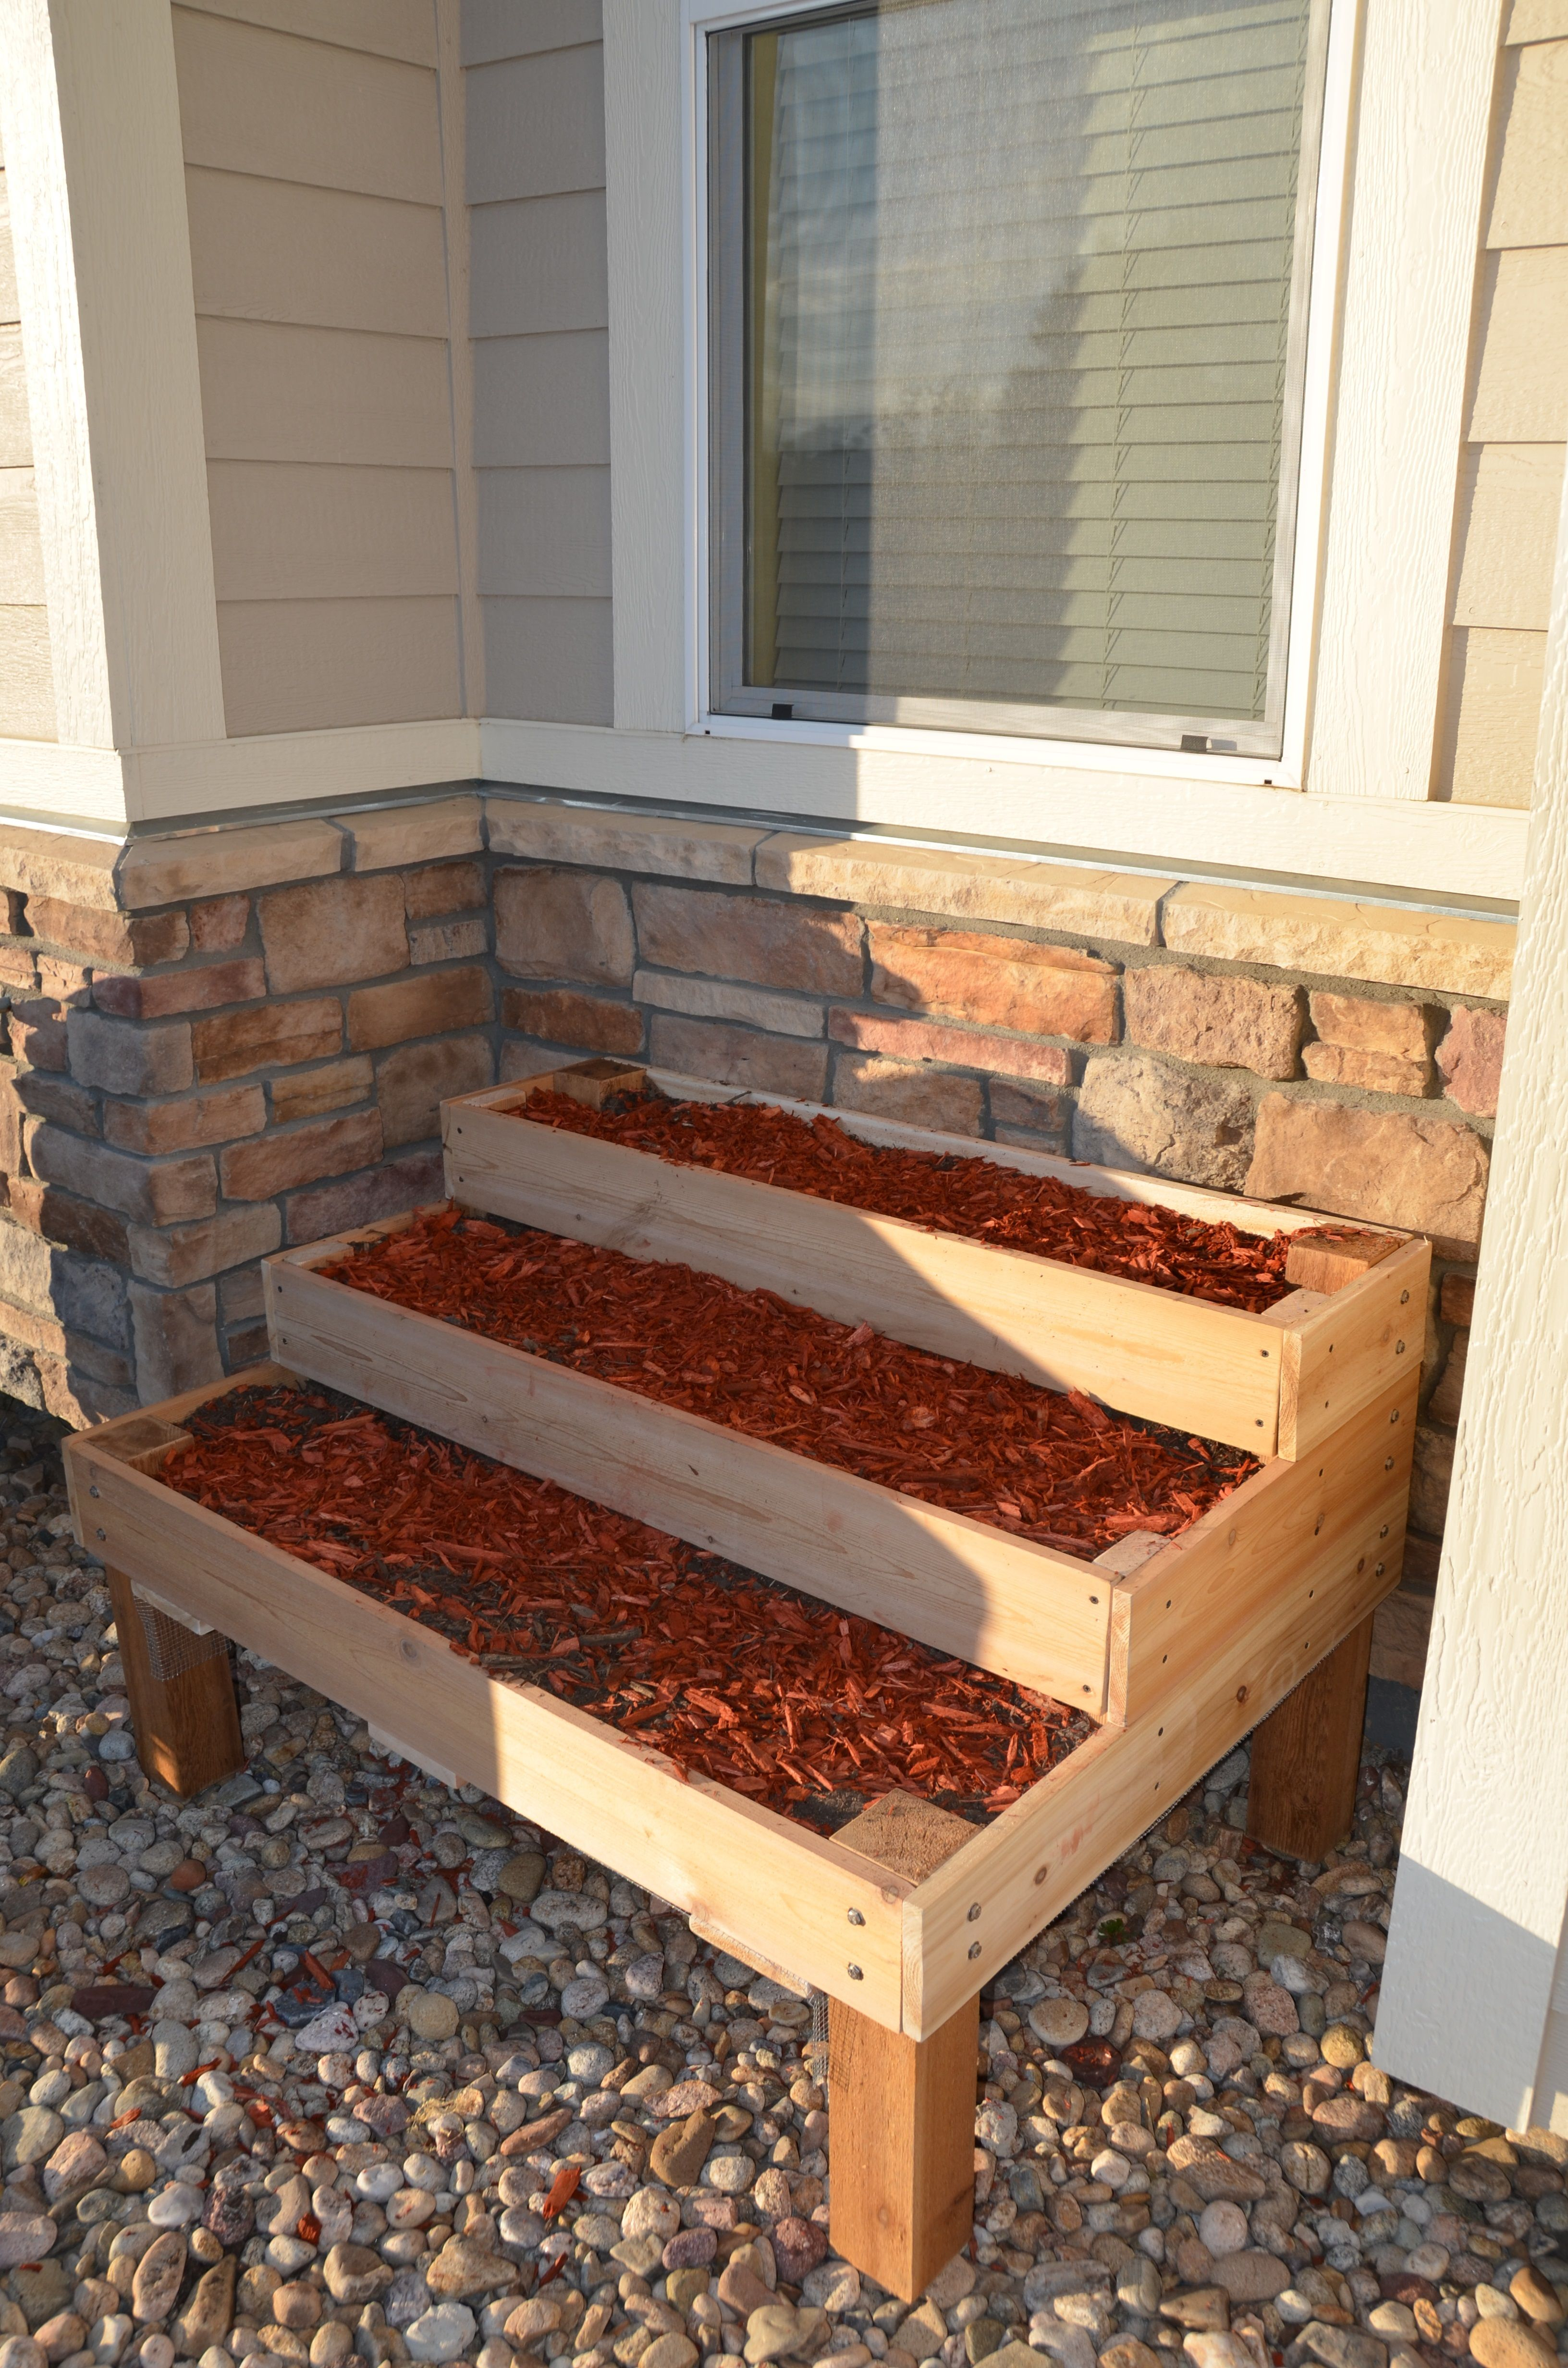 diy stepped tiered planter 2x4 raised bed Diy garden bed